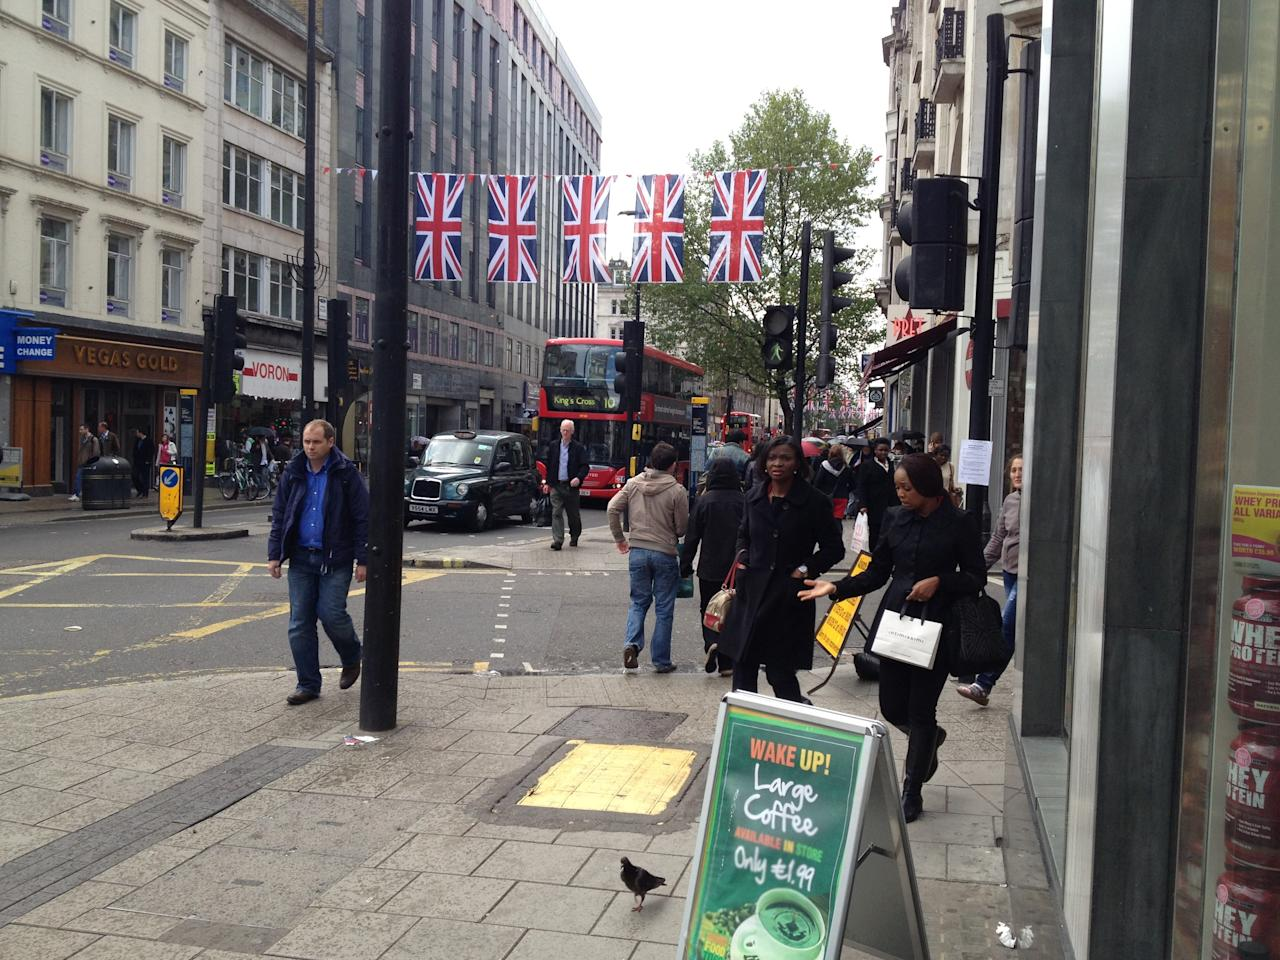 Jubilee being marked in Oxford Street